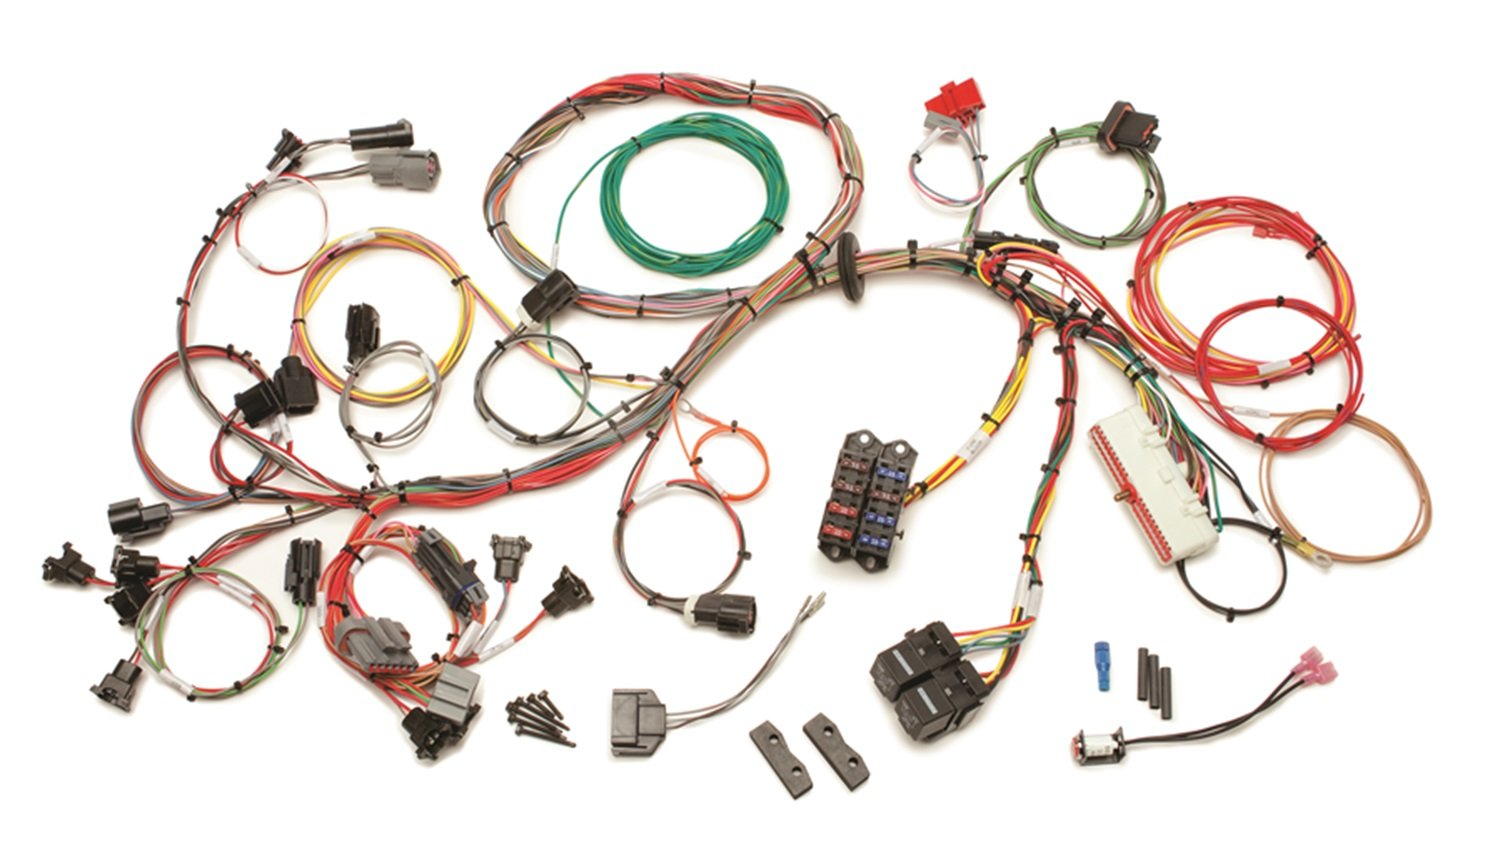 71UX1IBfleL._SL1500_ amazon com painless 60510 5 0l wiring harness automotive painless wiring harness at gsmx.co